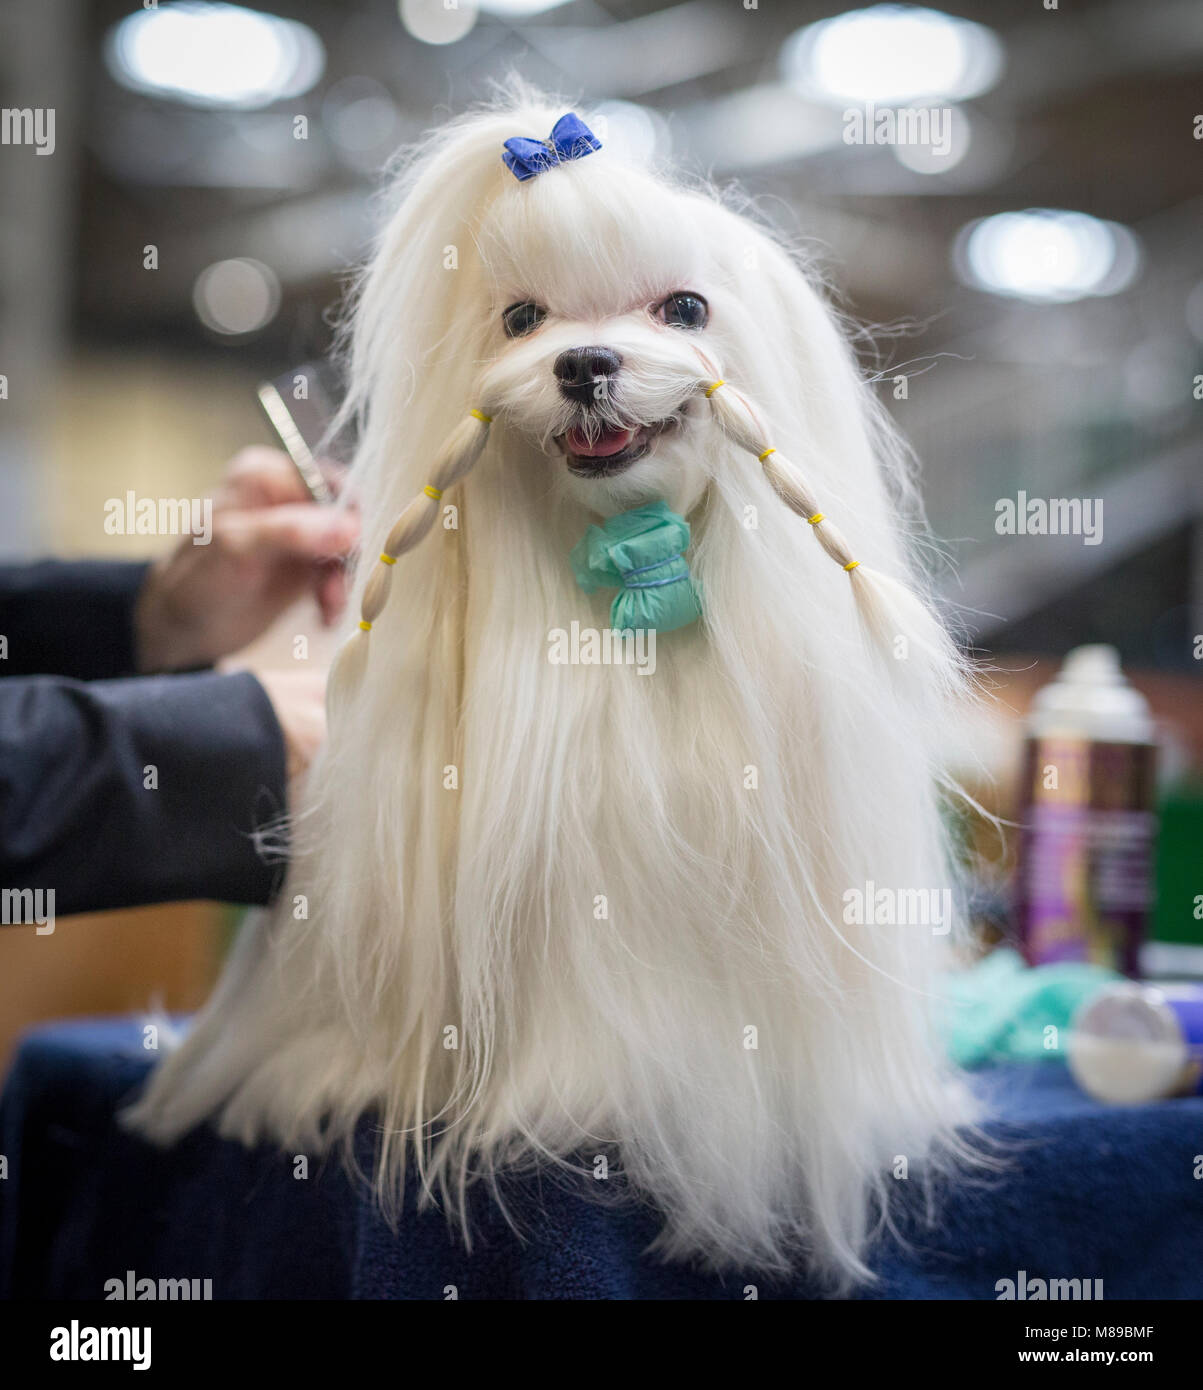 A Maltese being groomed ready for judging at Crufts dog show - Stock Image